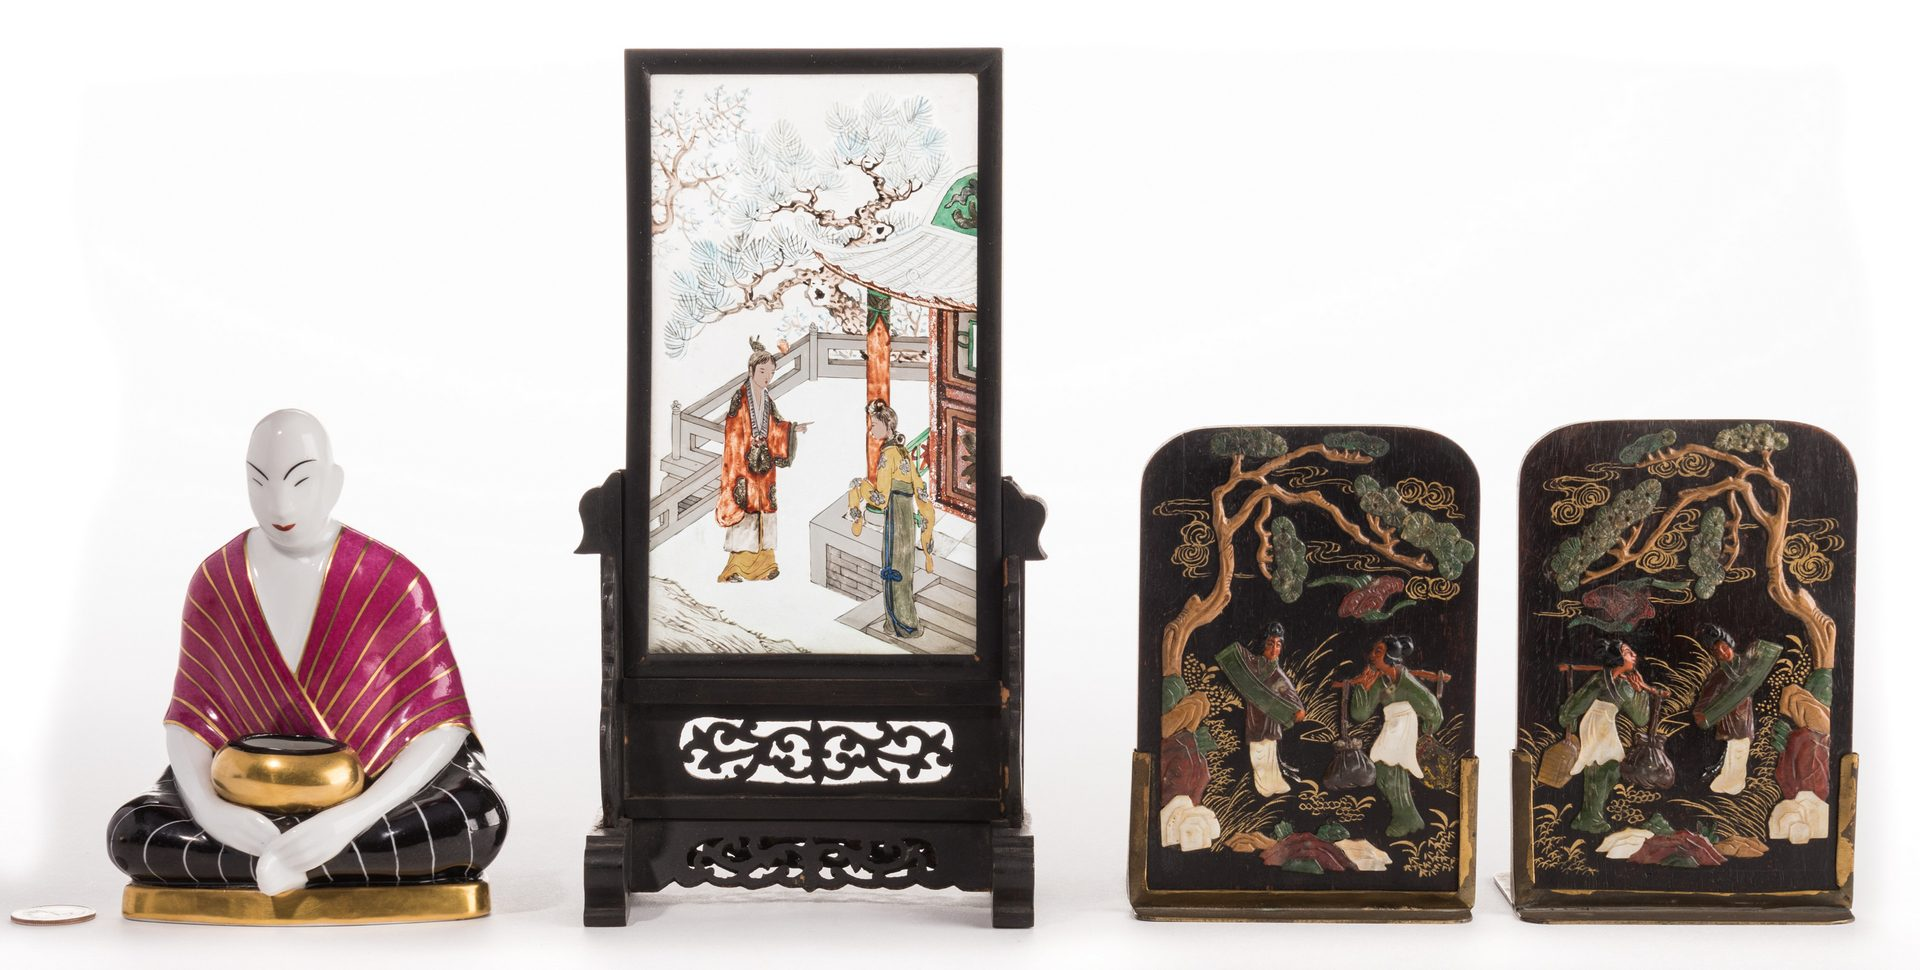 Lot 658: 4 Chinese Ancestor Portraits & 3 Asian Decorative Items, 7 items